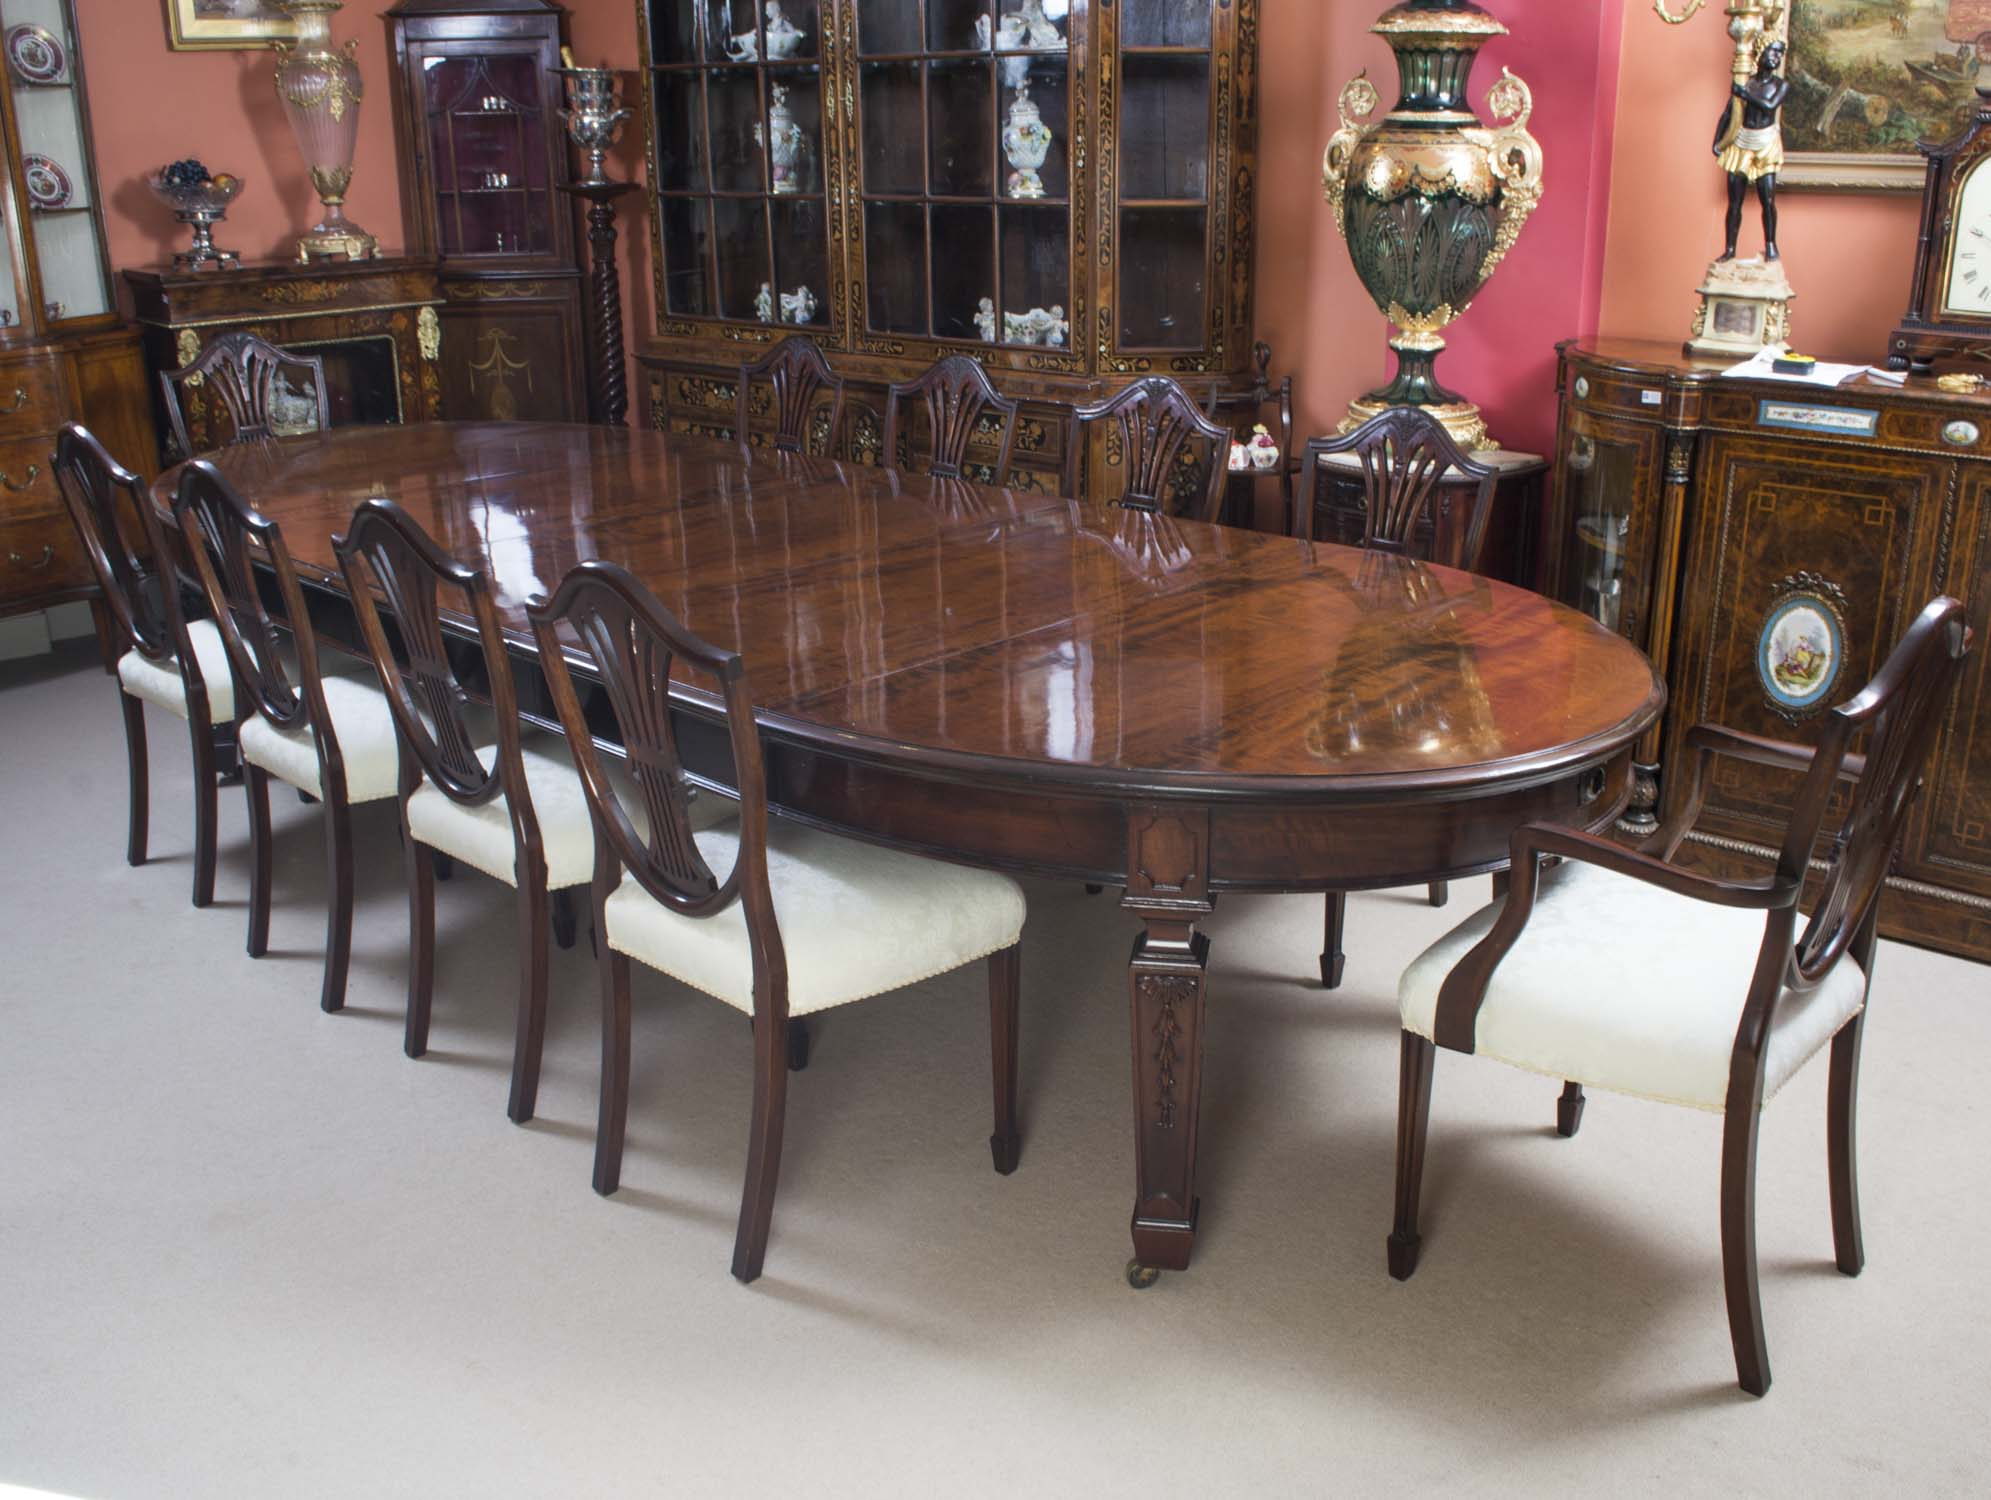 antique 12ft 6 edwardian dining table 10 chairs ref no 06253b regent antiques. Black Bedroom Furniture Sets. Home Design Ideas